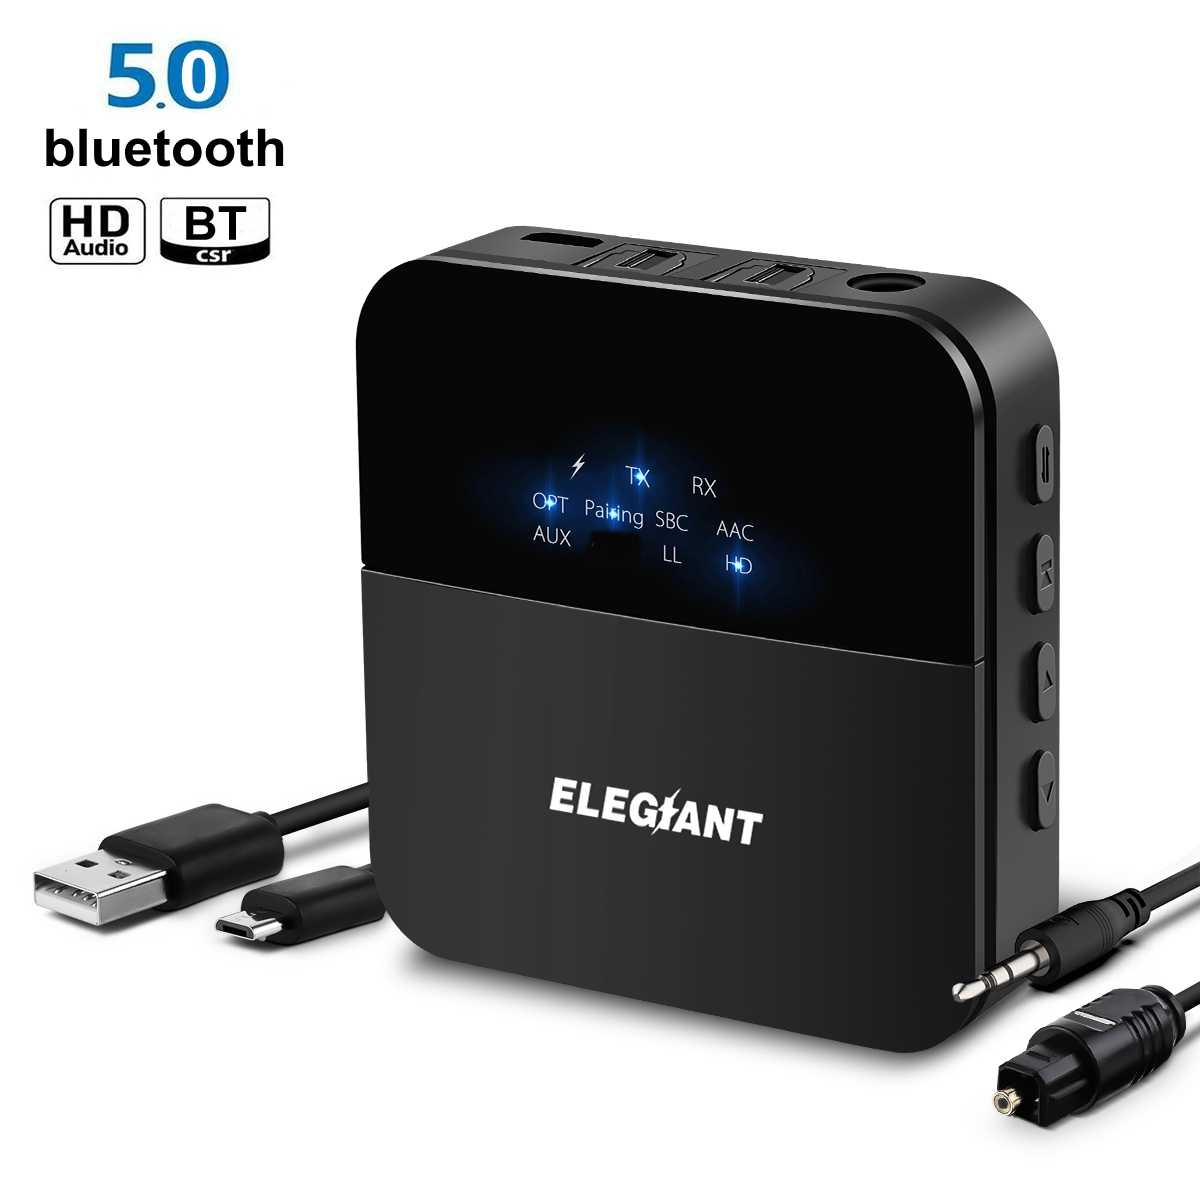 Elegiant 3.5 Mm 2RCA HD Bluetooth 5.0 Audio Transmitter Receiver Adaptor Nirkabel/AUX/II/HI FI untuk Headphone mobil